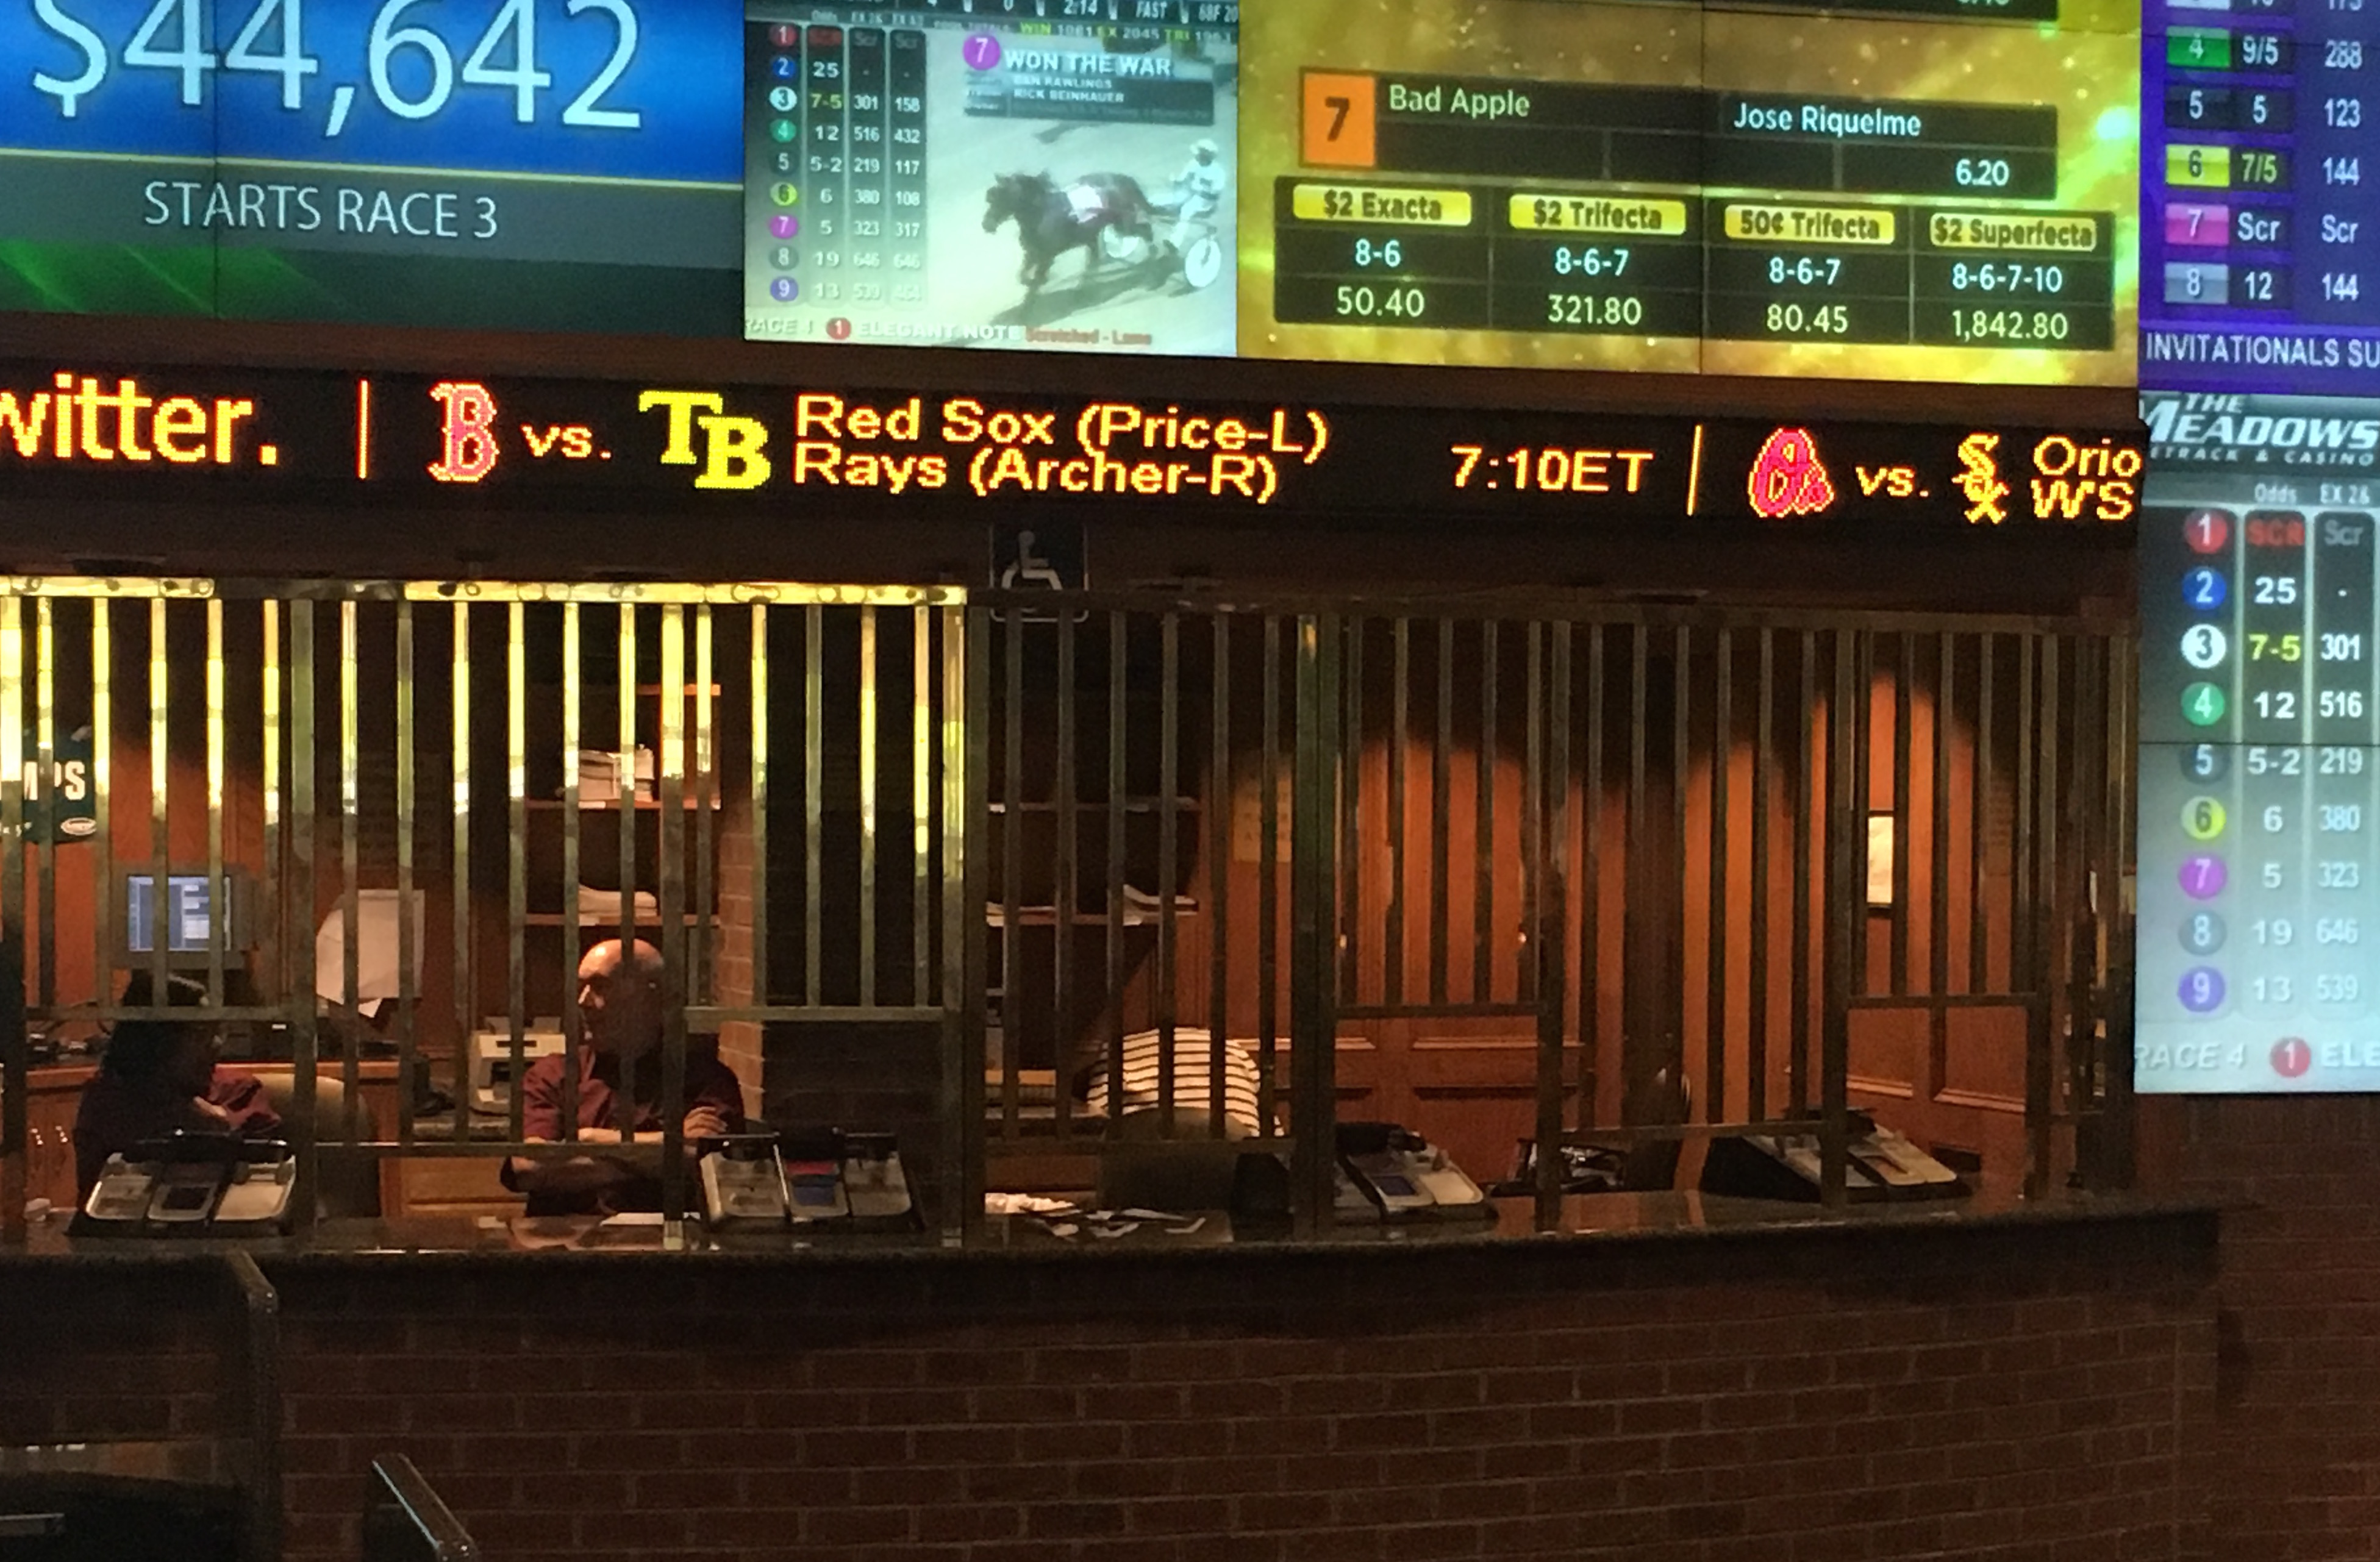 Delaware park sports betting address search can you bet on football in atlantic city